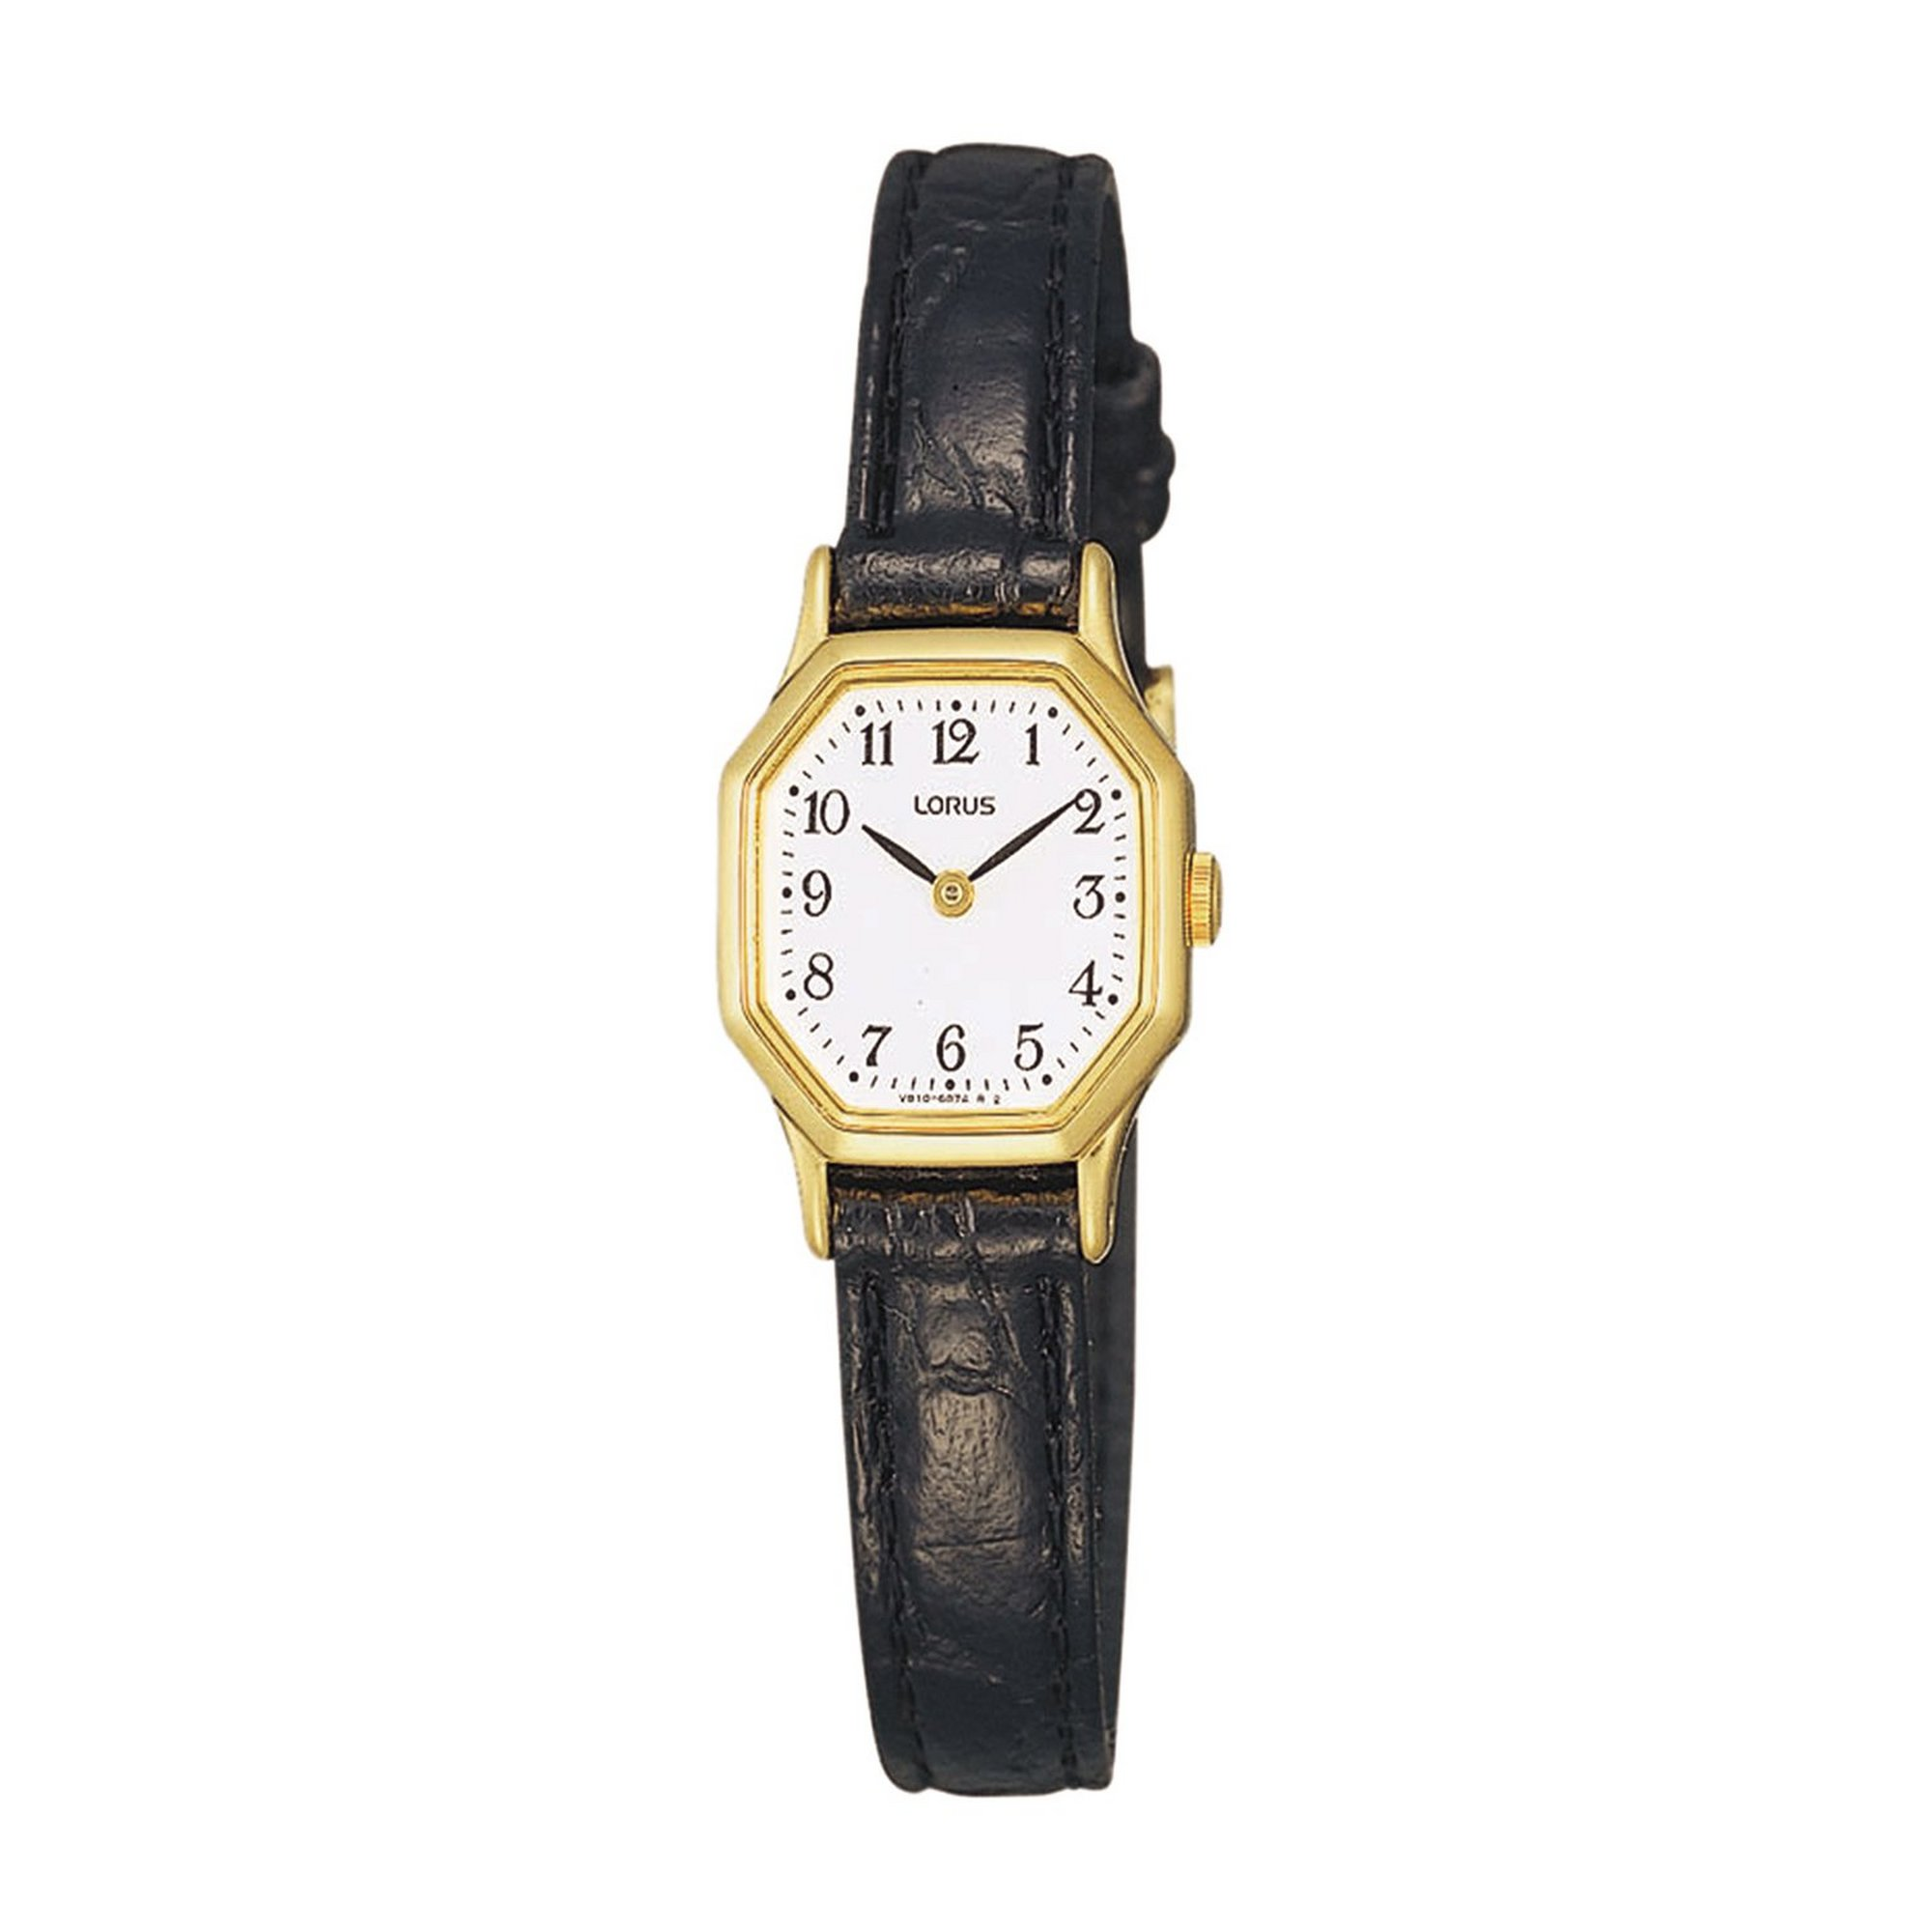 Image of Lorus Gold Hexagonal Watch with Black Leather Strap